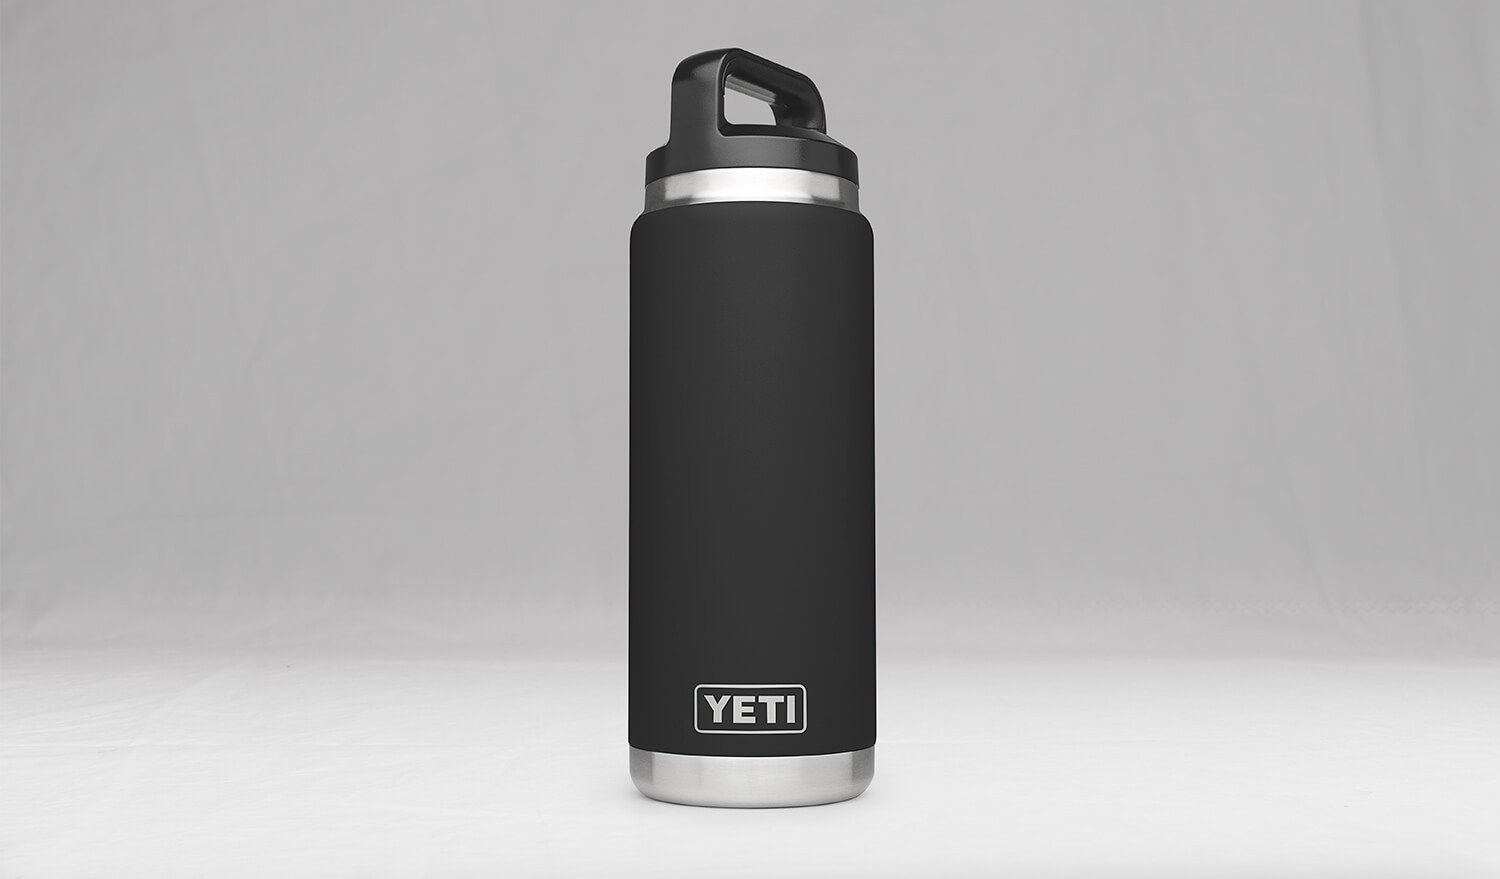 0a8f486a4c Amazon.com: YETI Rambler 26oz Vacuum Insulated Stainless Steel Bottle with  Cap, Black DuraCoat: Sports & Outdoors